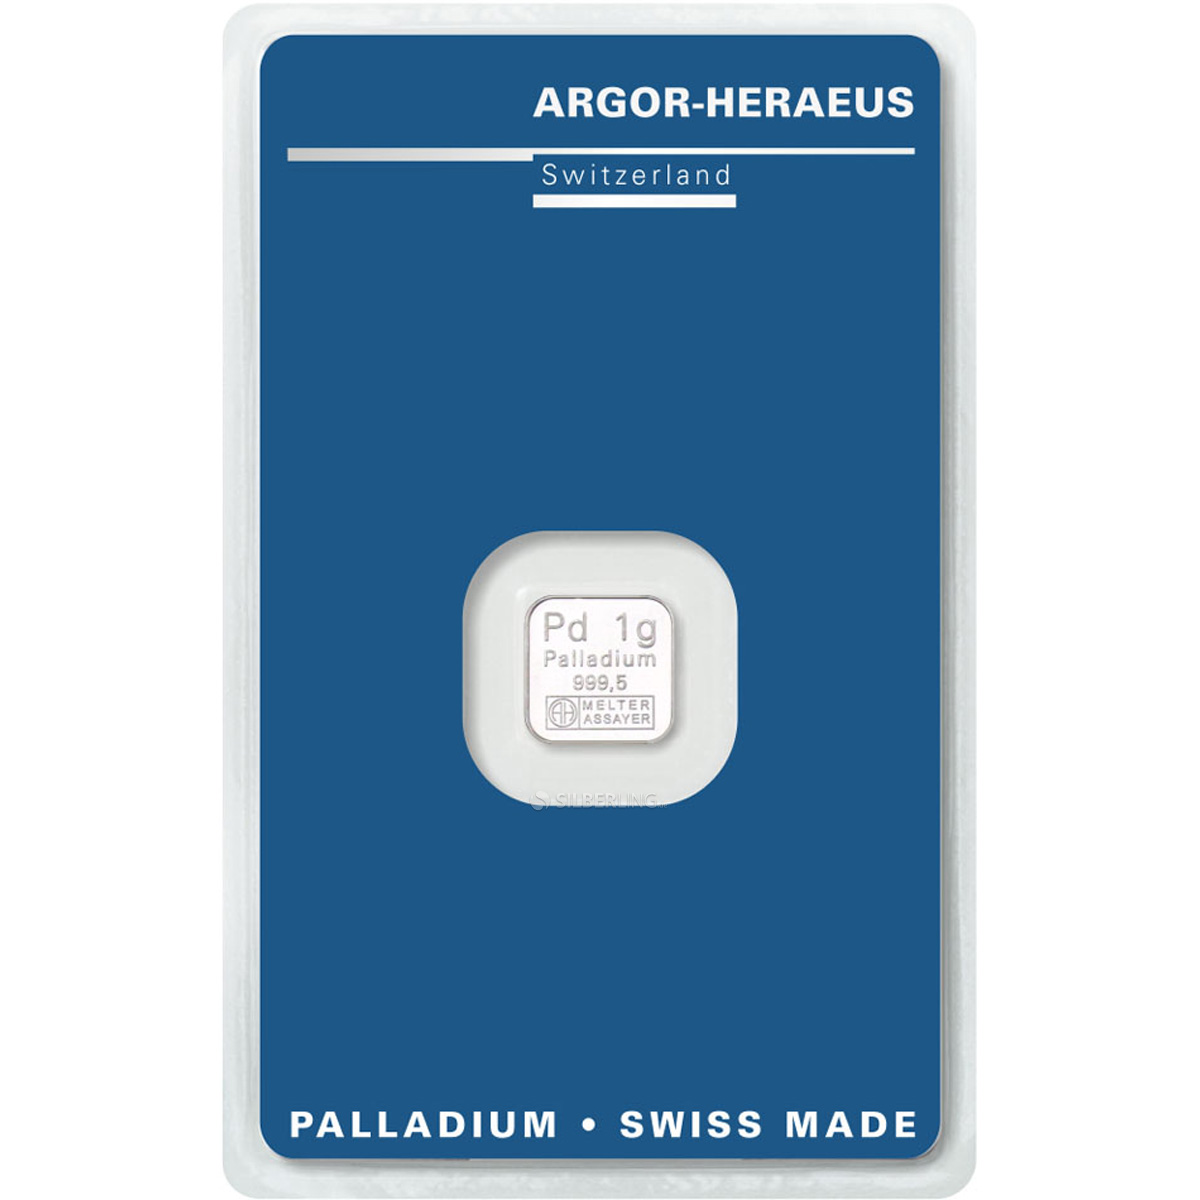 Palladium Bar 1 Gram Argor Heraeus Buy Online